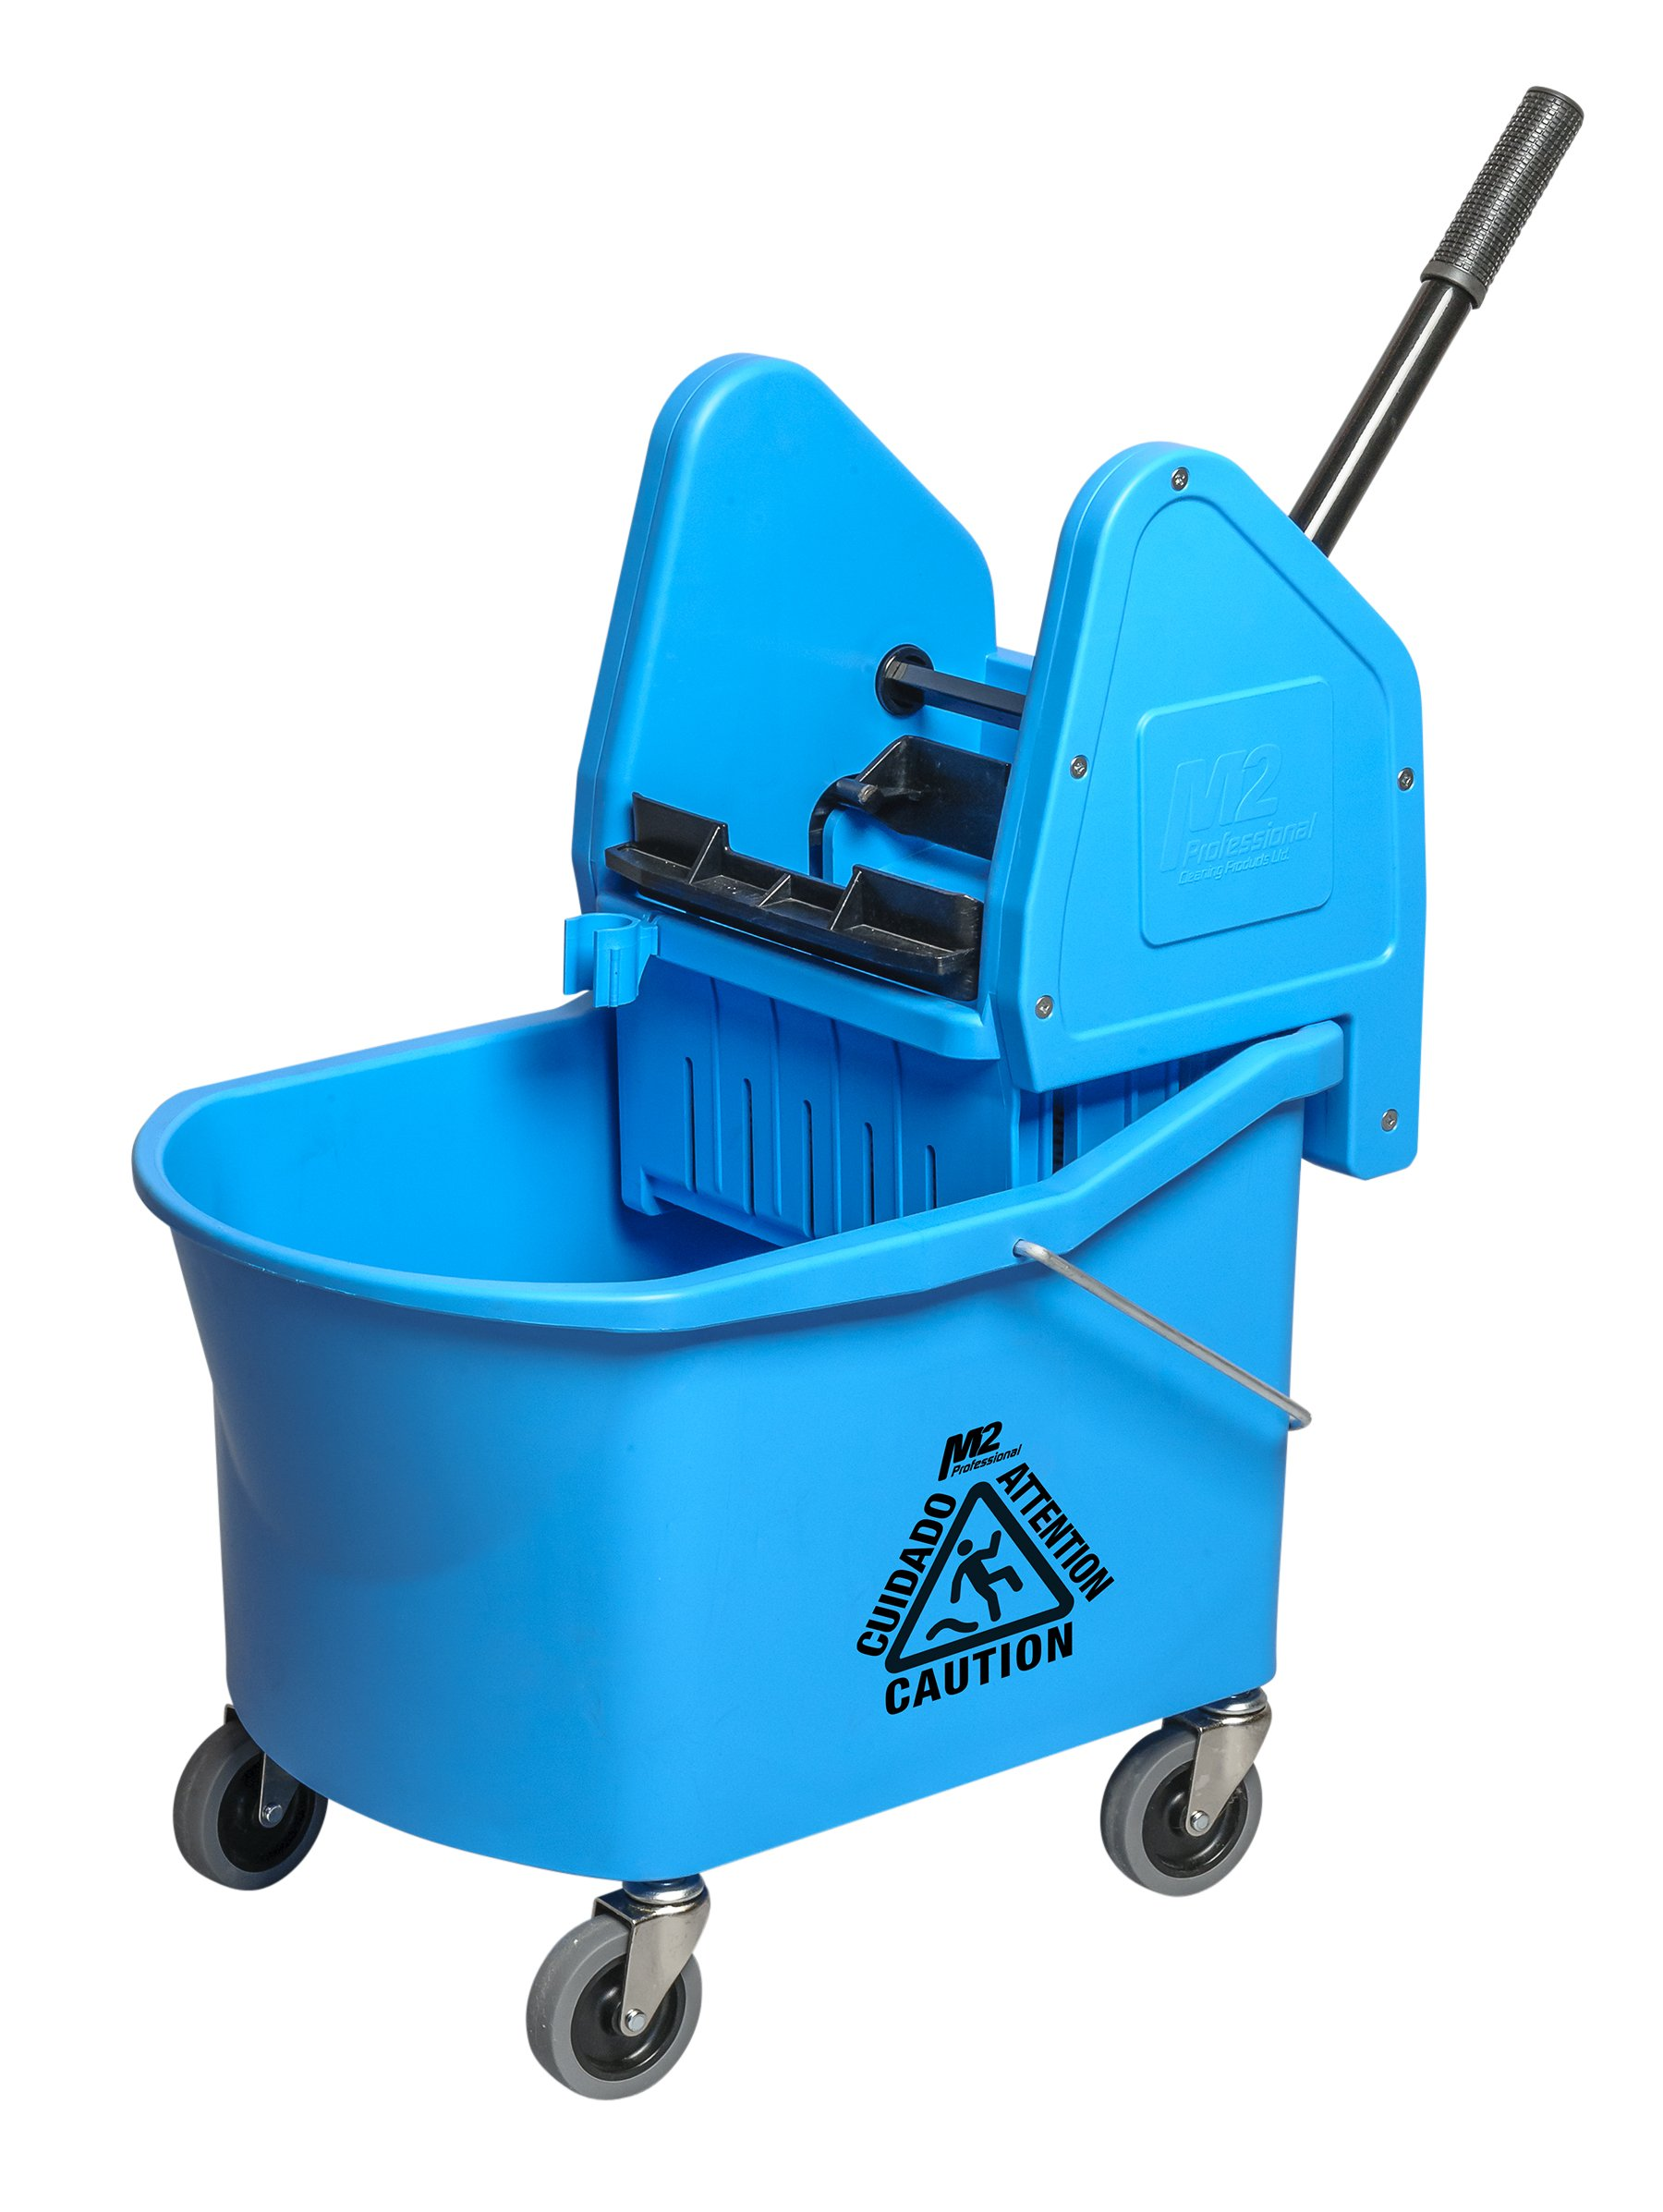 M2 Professional 32Qt/30L Grizzly Mop Bucket with Down-Press Wringer - Blue by M2 Professional Cleaning Products Ltd. (Image #1)